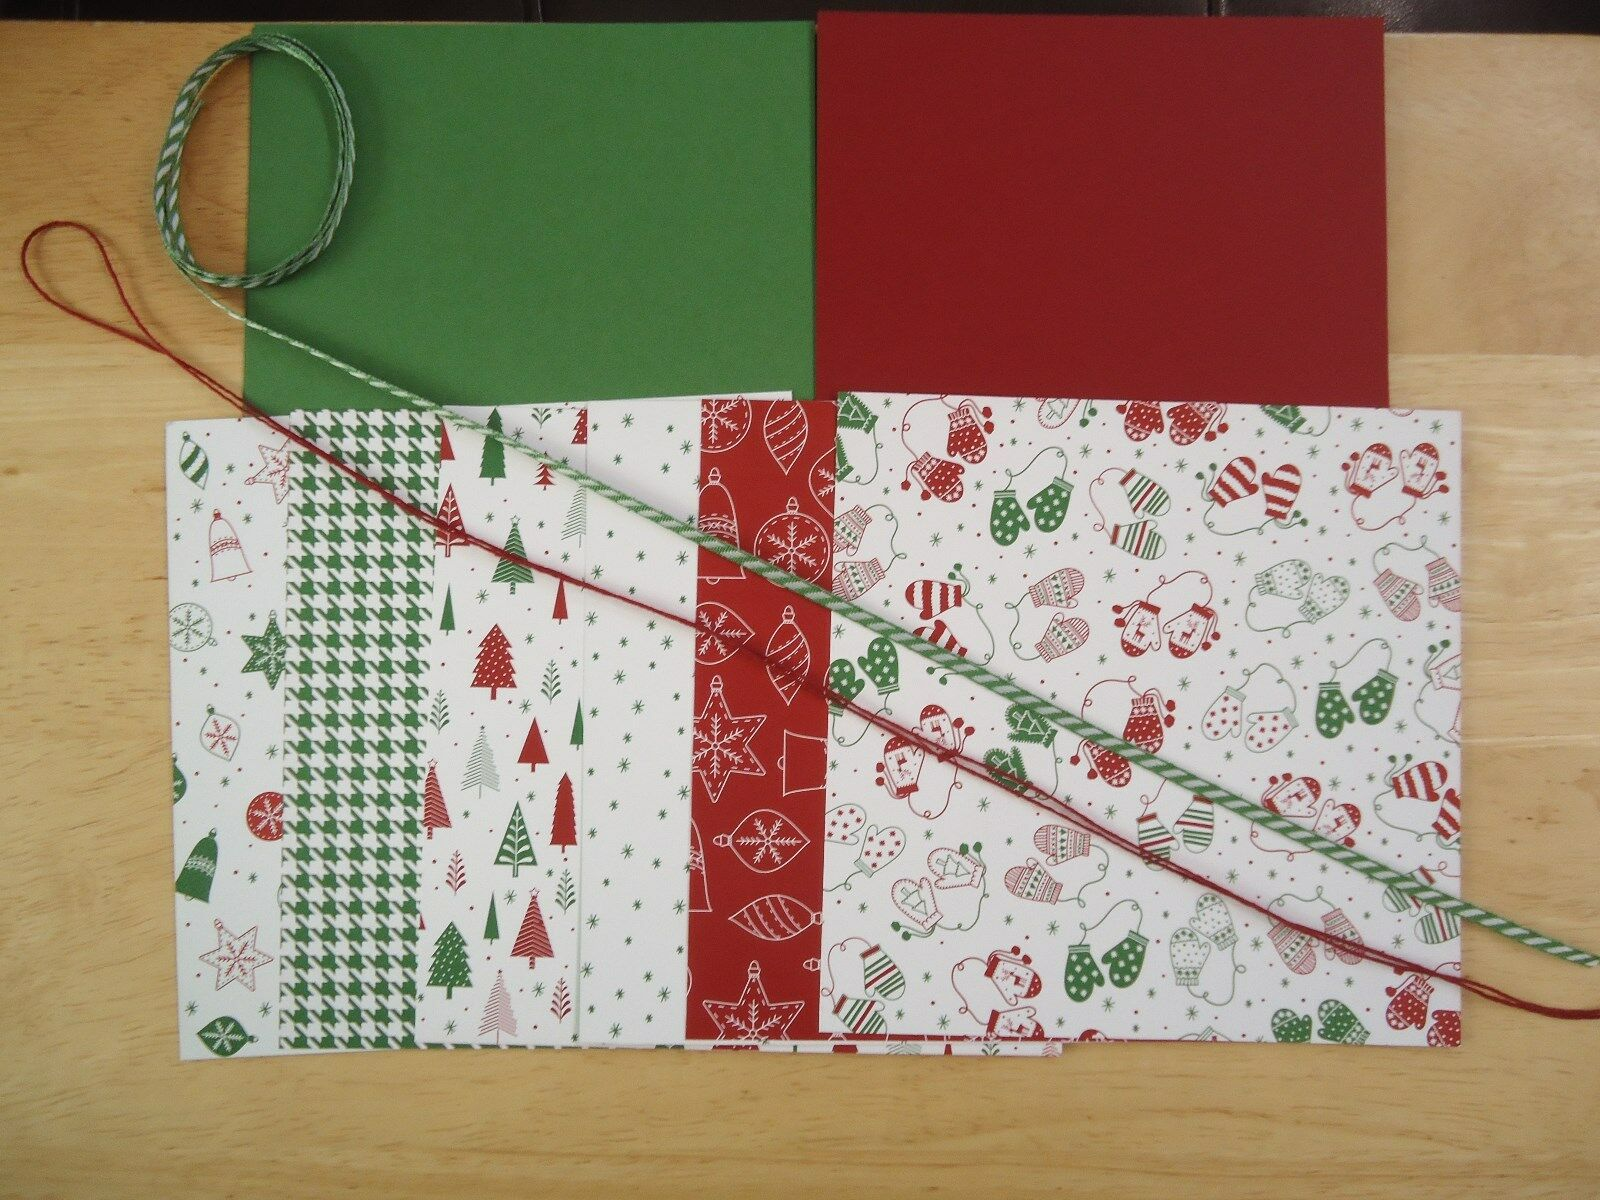 Stampin Up BE MERRY Paper Card Kit CHRISTMAS Ribbon Stockings Trees Mittens 1 of 1 See More